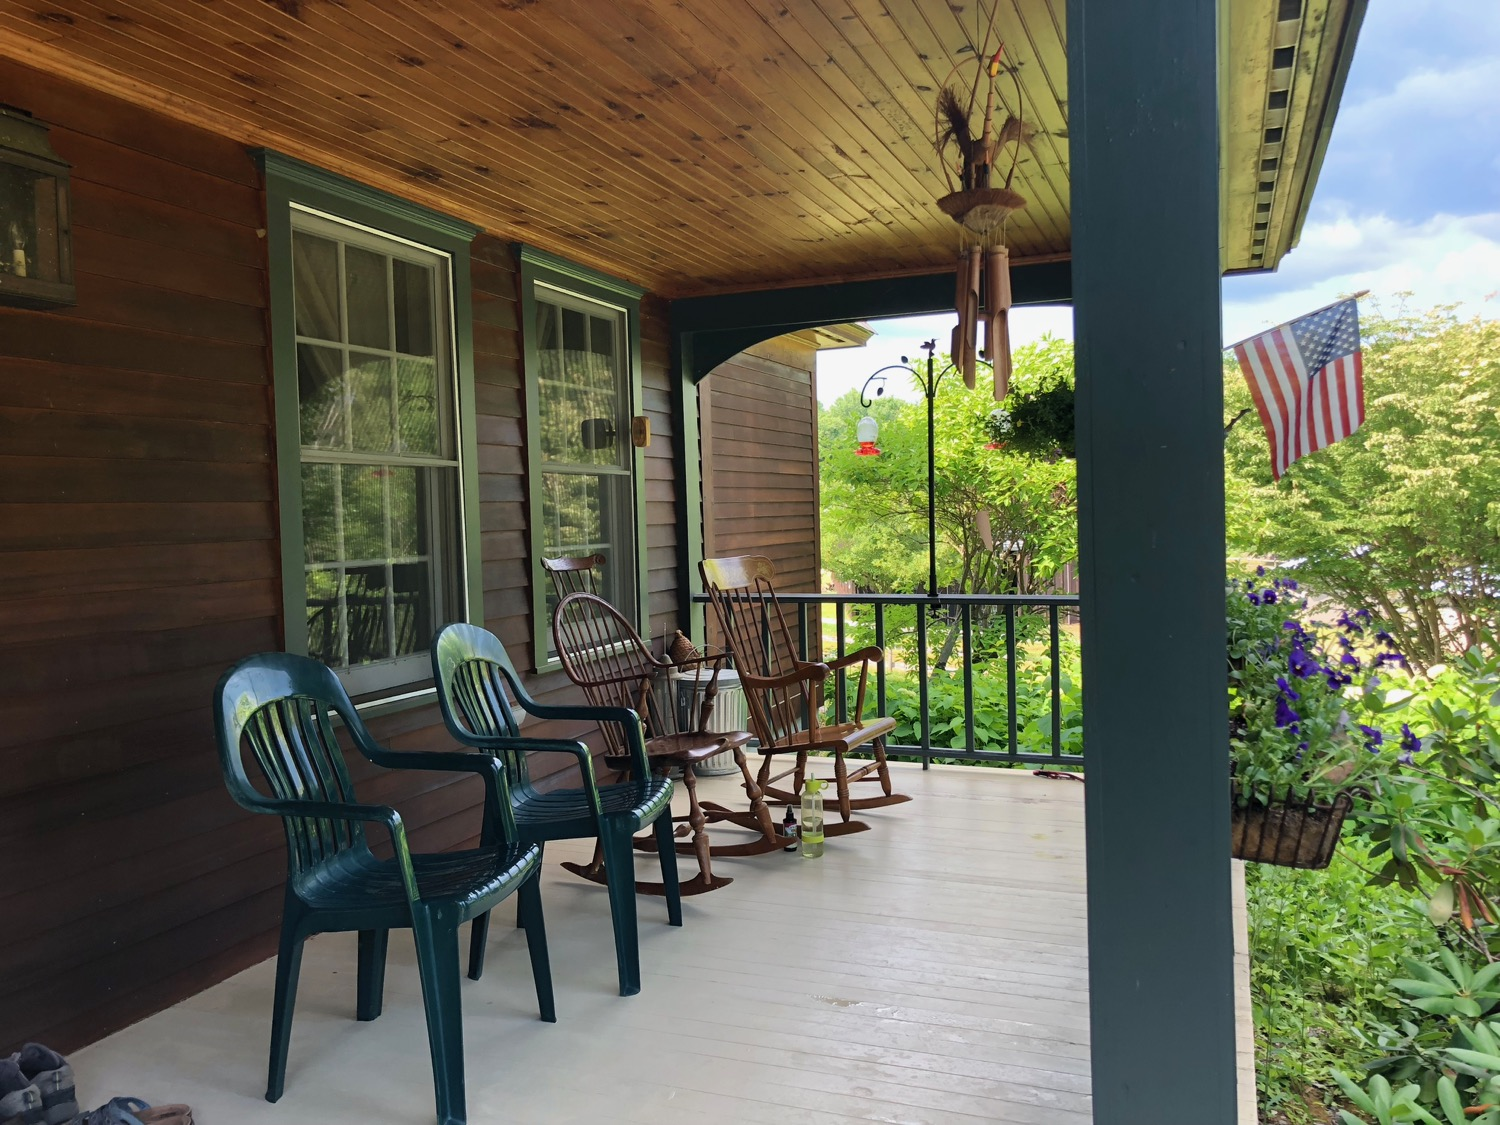 chairs-front-porch.jpg